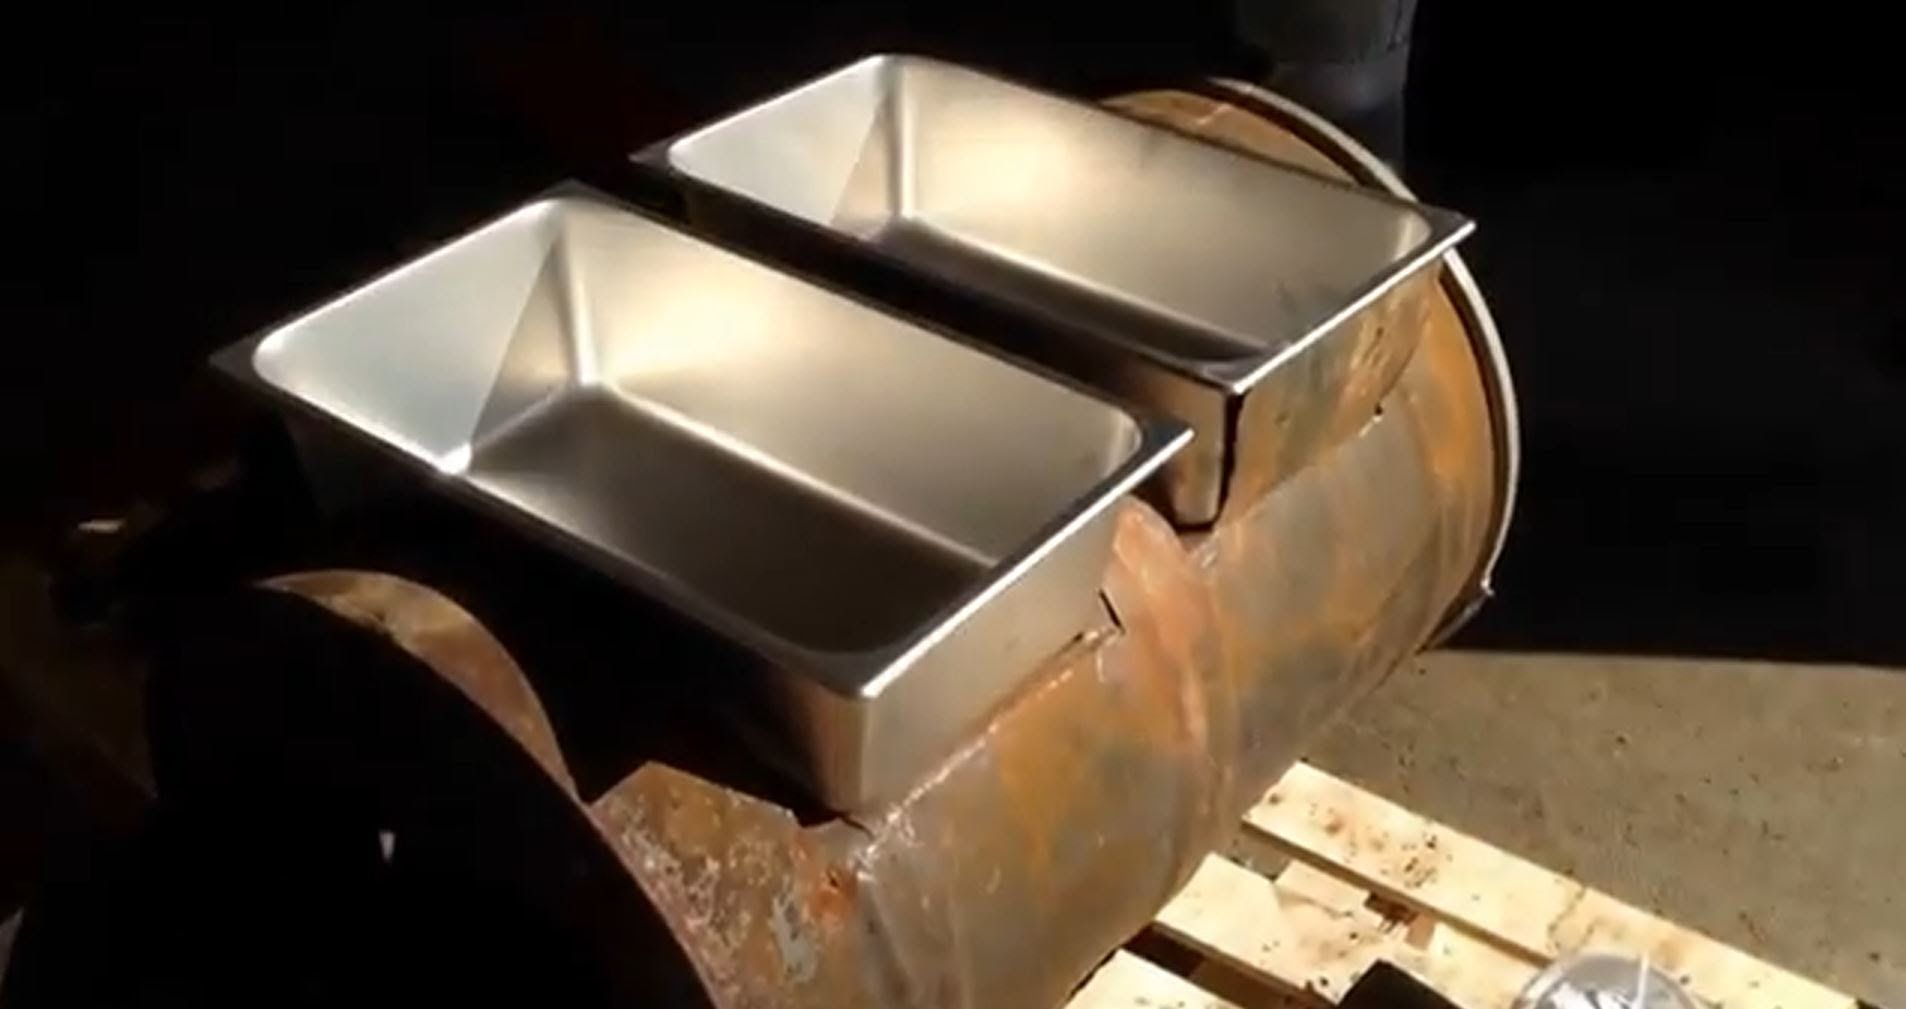 Building a Homemade Maple Syrup Evaporator -- $55 in Supplies